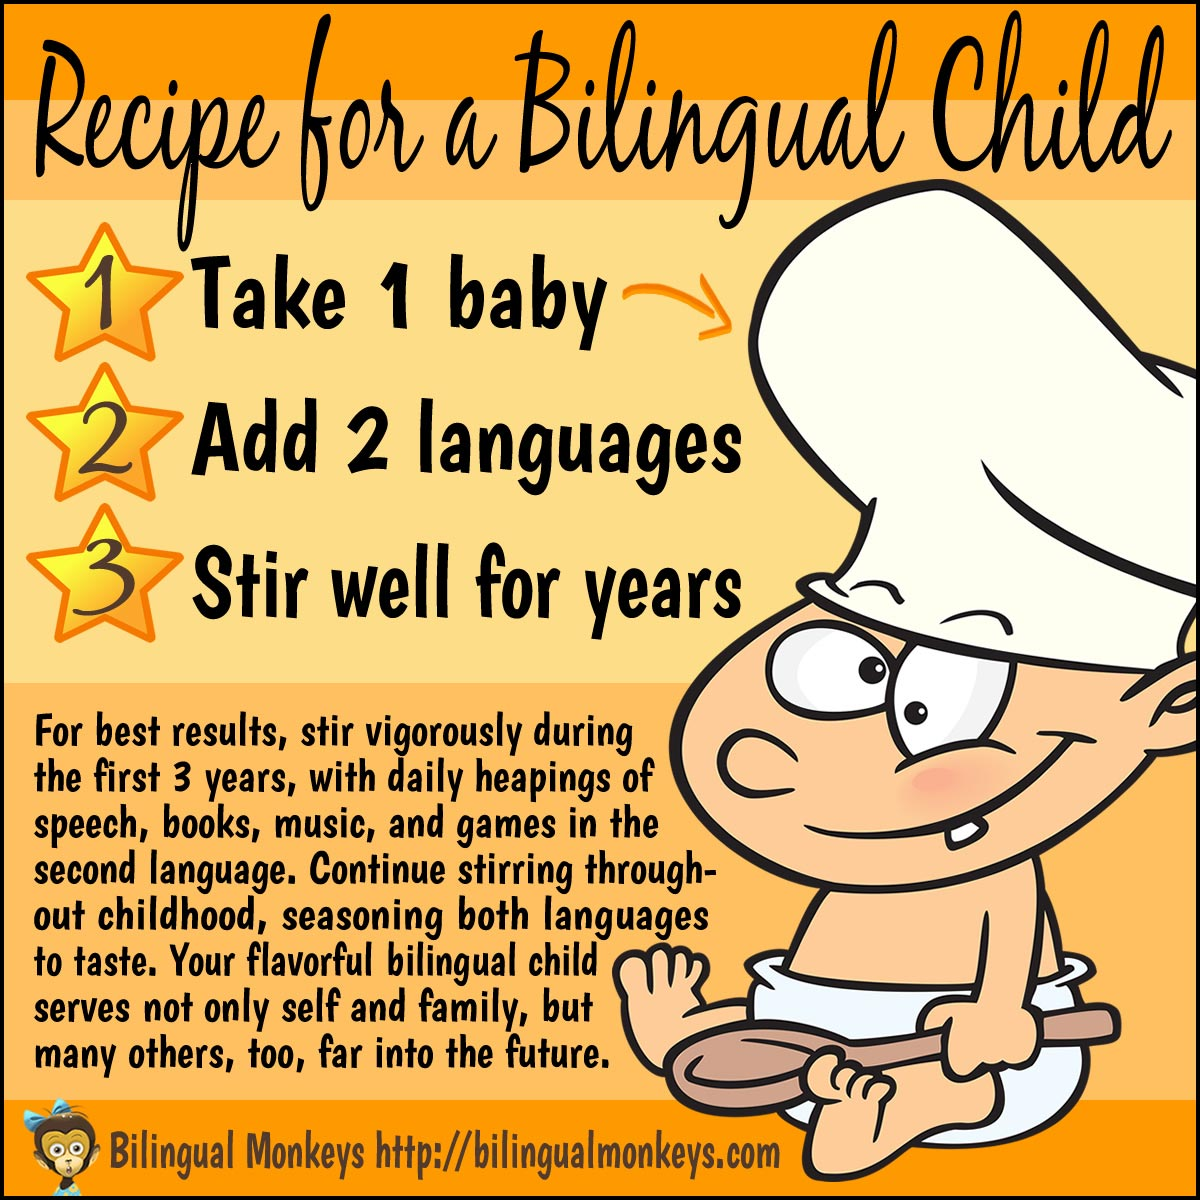 Recipe for a Bilingual Child